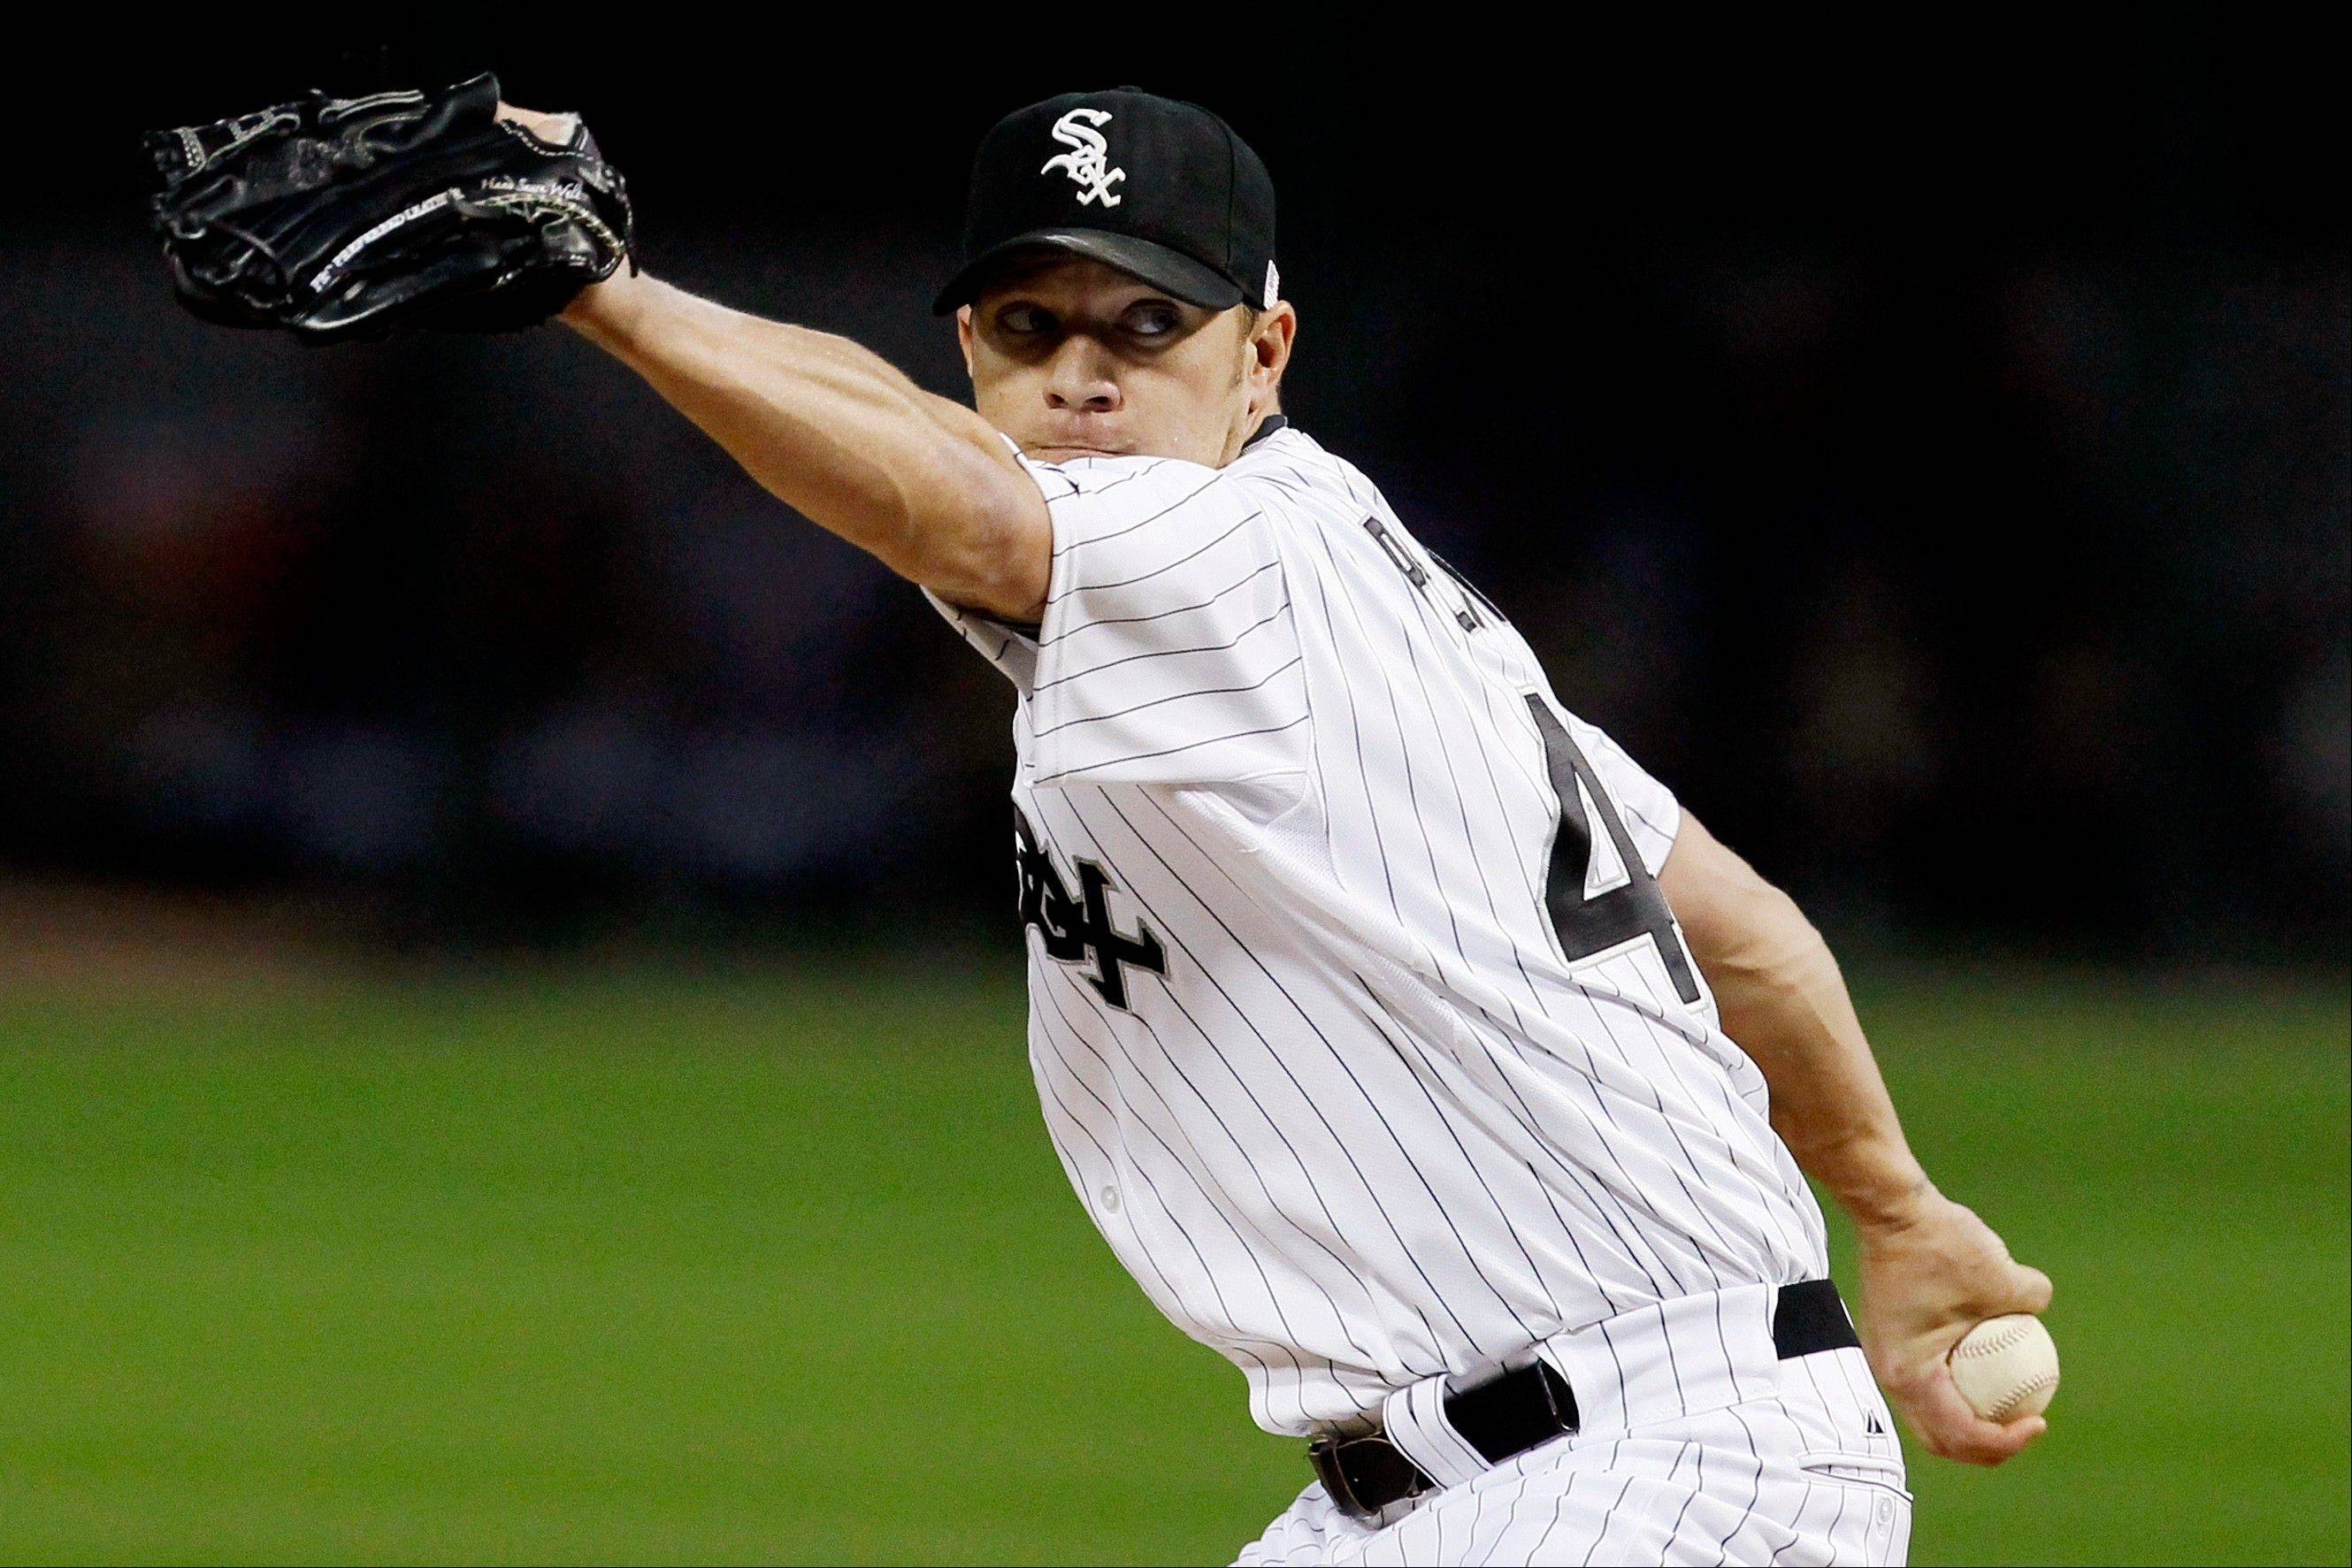 White Sox starting pitcher Jake Peavy delivers Tuesday during the first inning against the Detroit Tigers at U.S. Cellular Field.